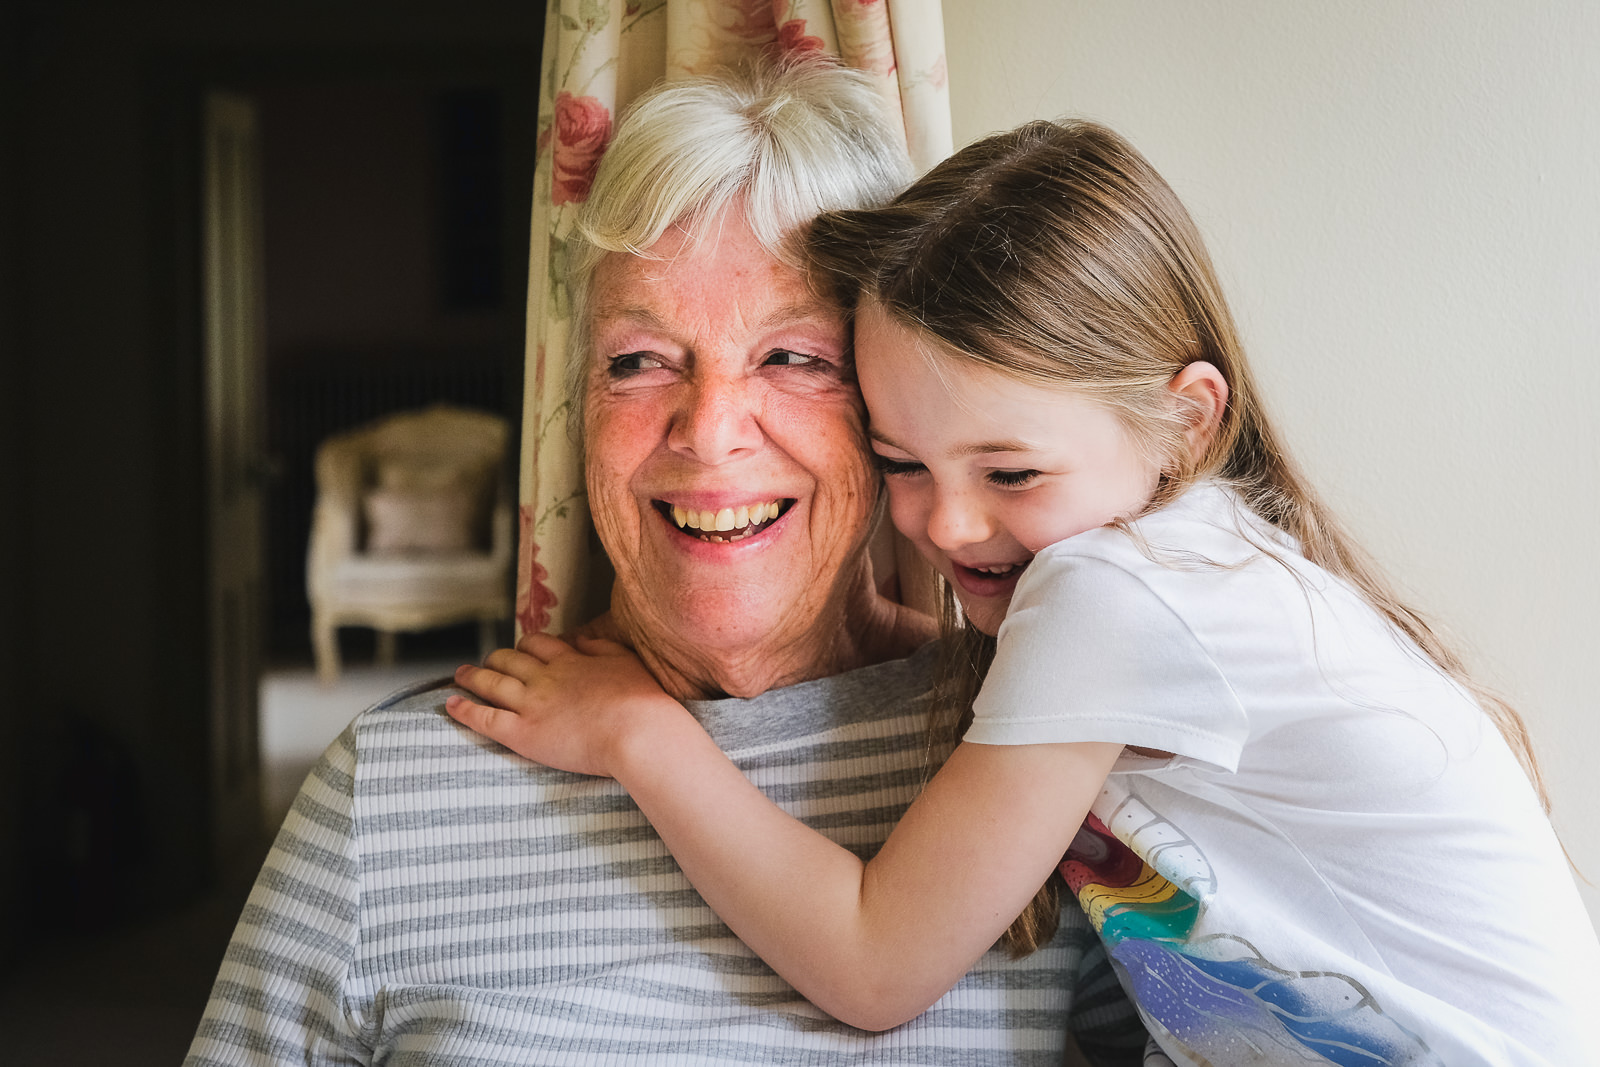 Special occasion family photography - grandmother and granddaughter smiling and cuddling at family celebration